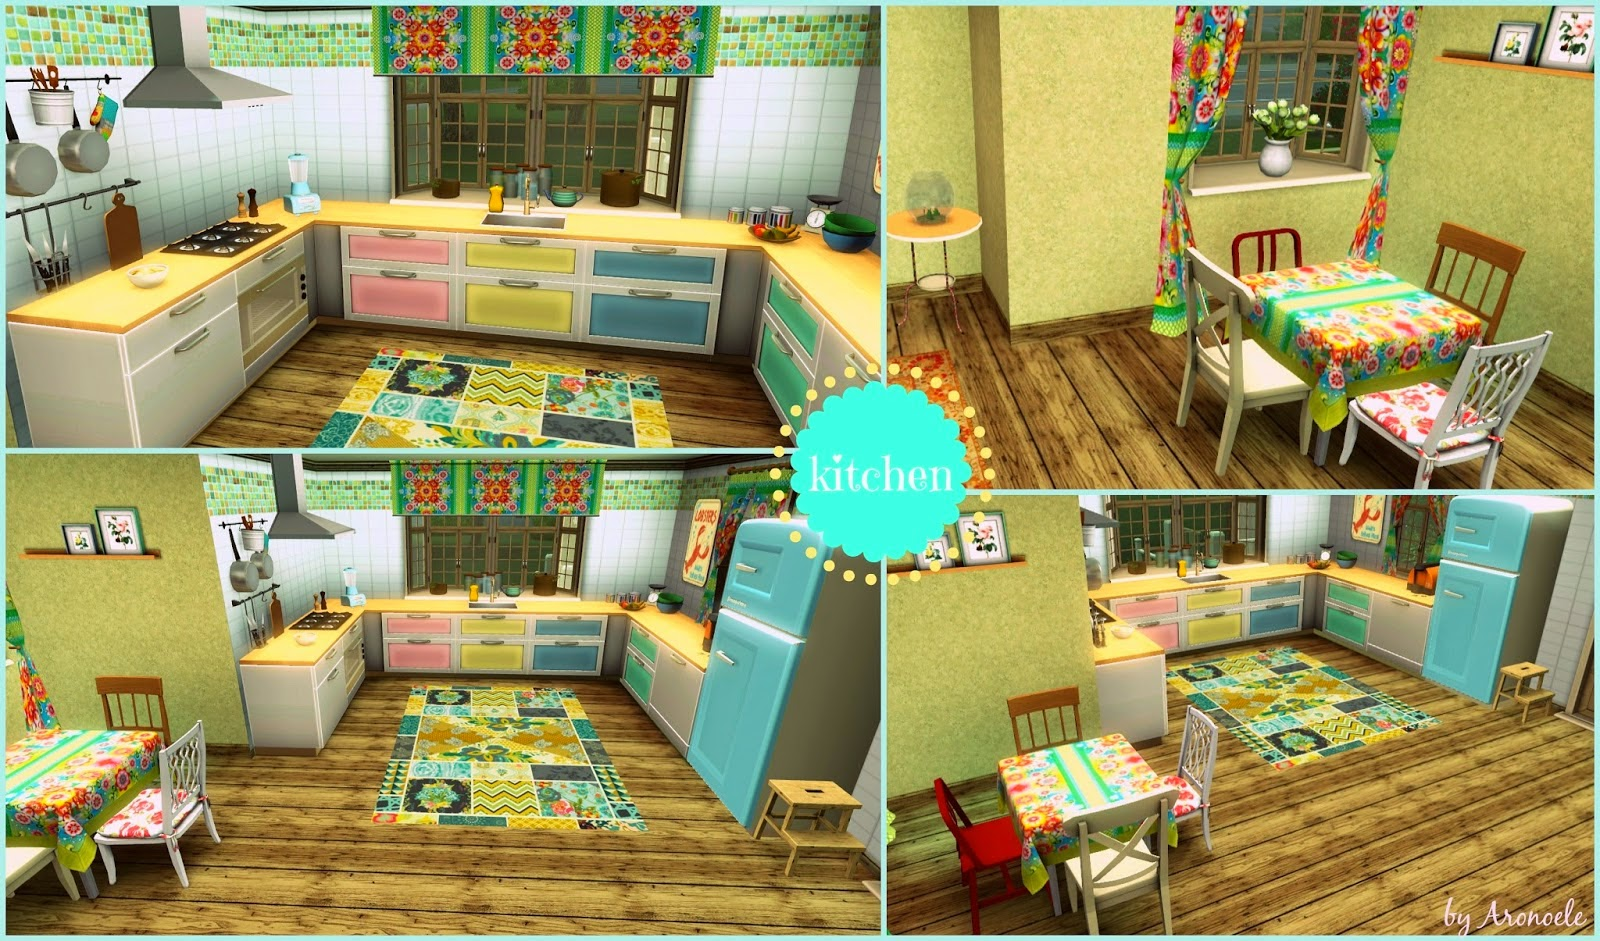 Watch in addition Index as well Sea Shore Beach Cottage additionally 403277 besides Dirty Skin At Decayclowns Sims. on sims 4 houses